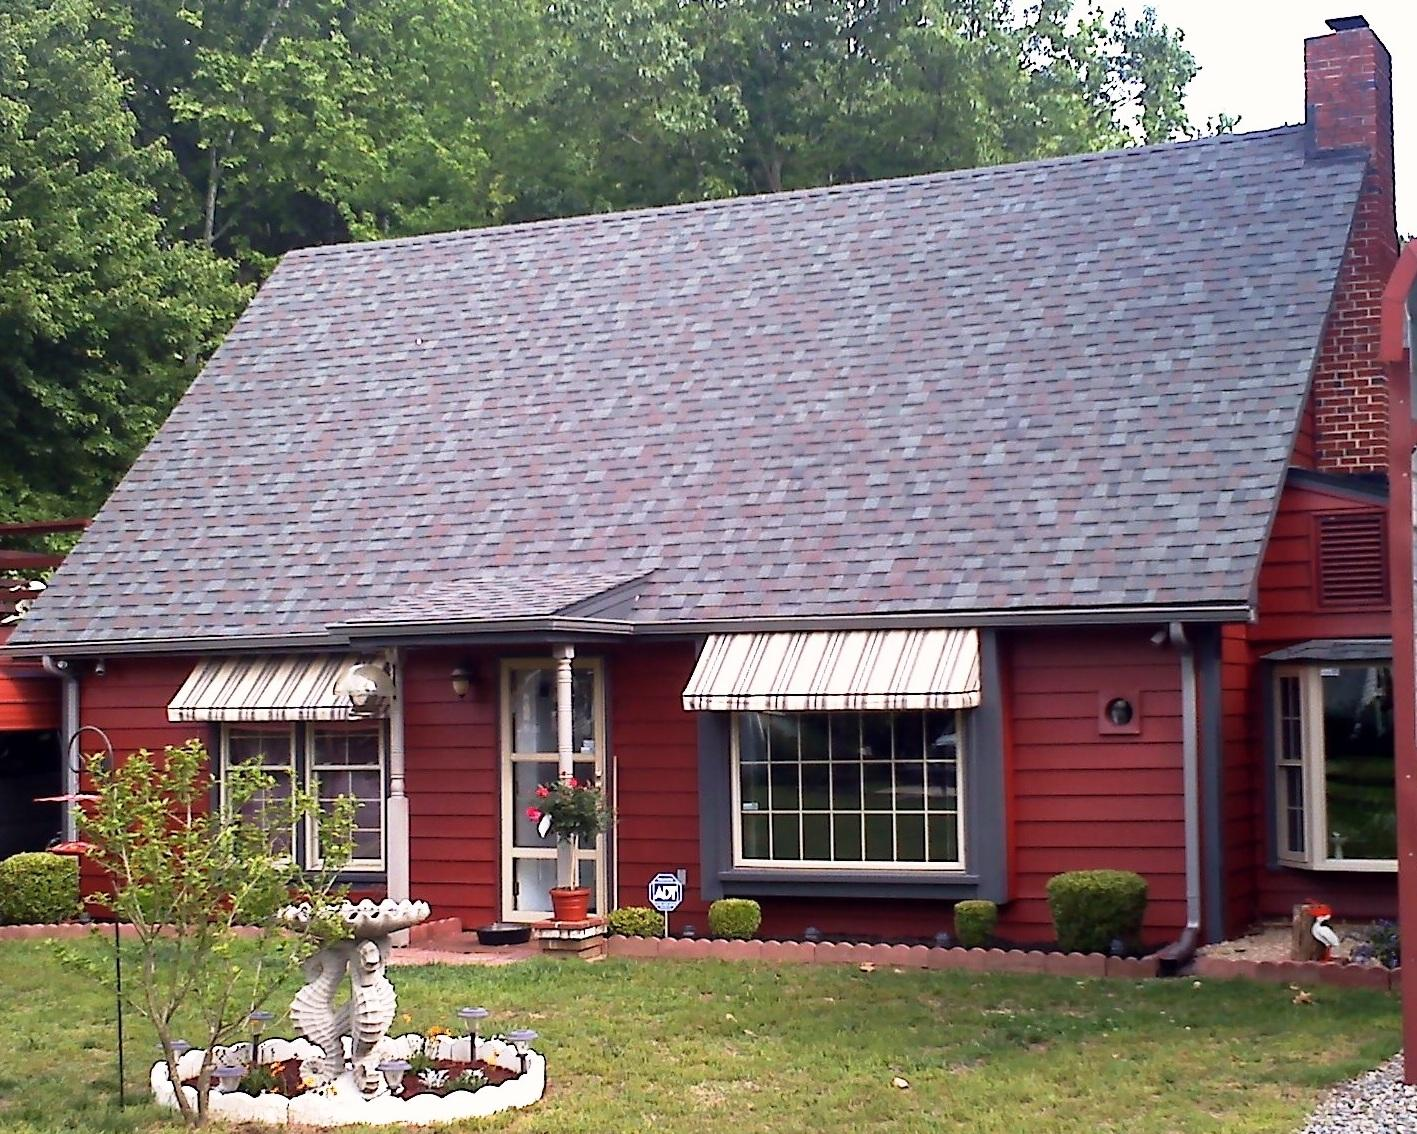 New Roof, Siding, Trim & Gutters in Gloucester, VA - After Photo